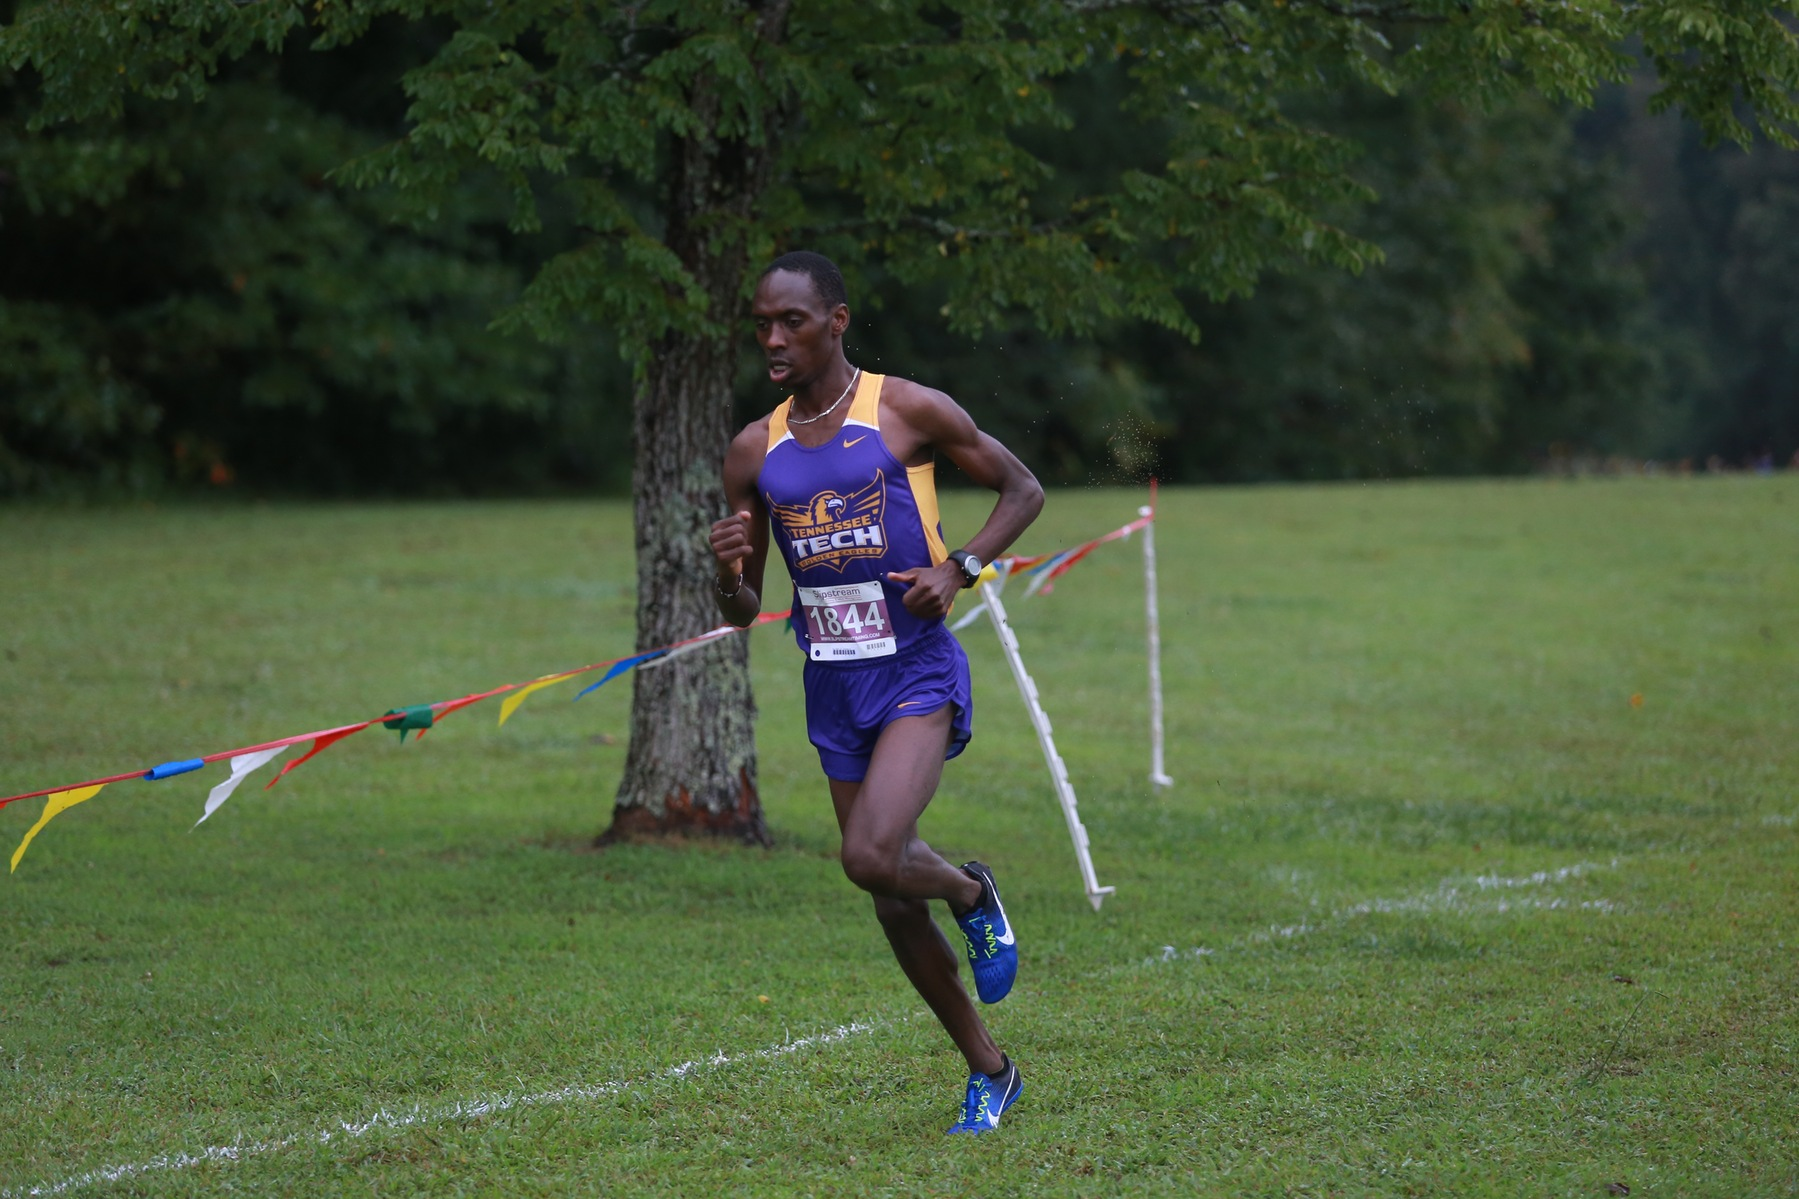 Men's cross country places 31st, Boit in top 20 with new school record at Pre-Nationals